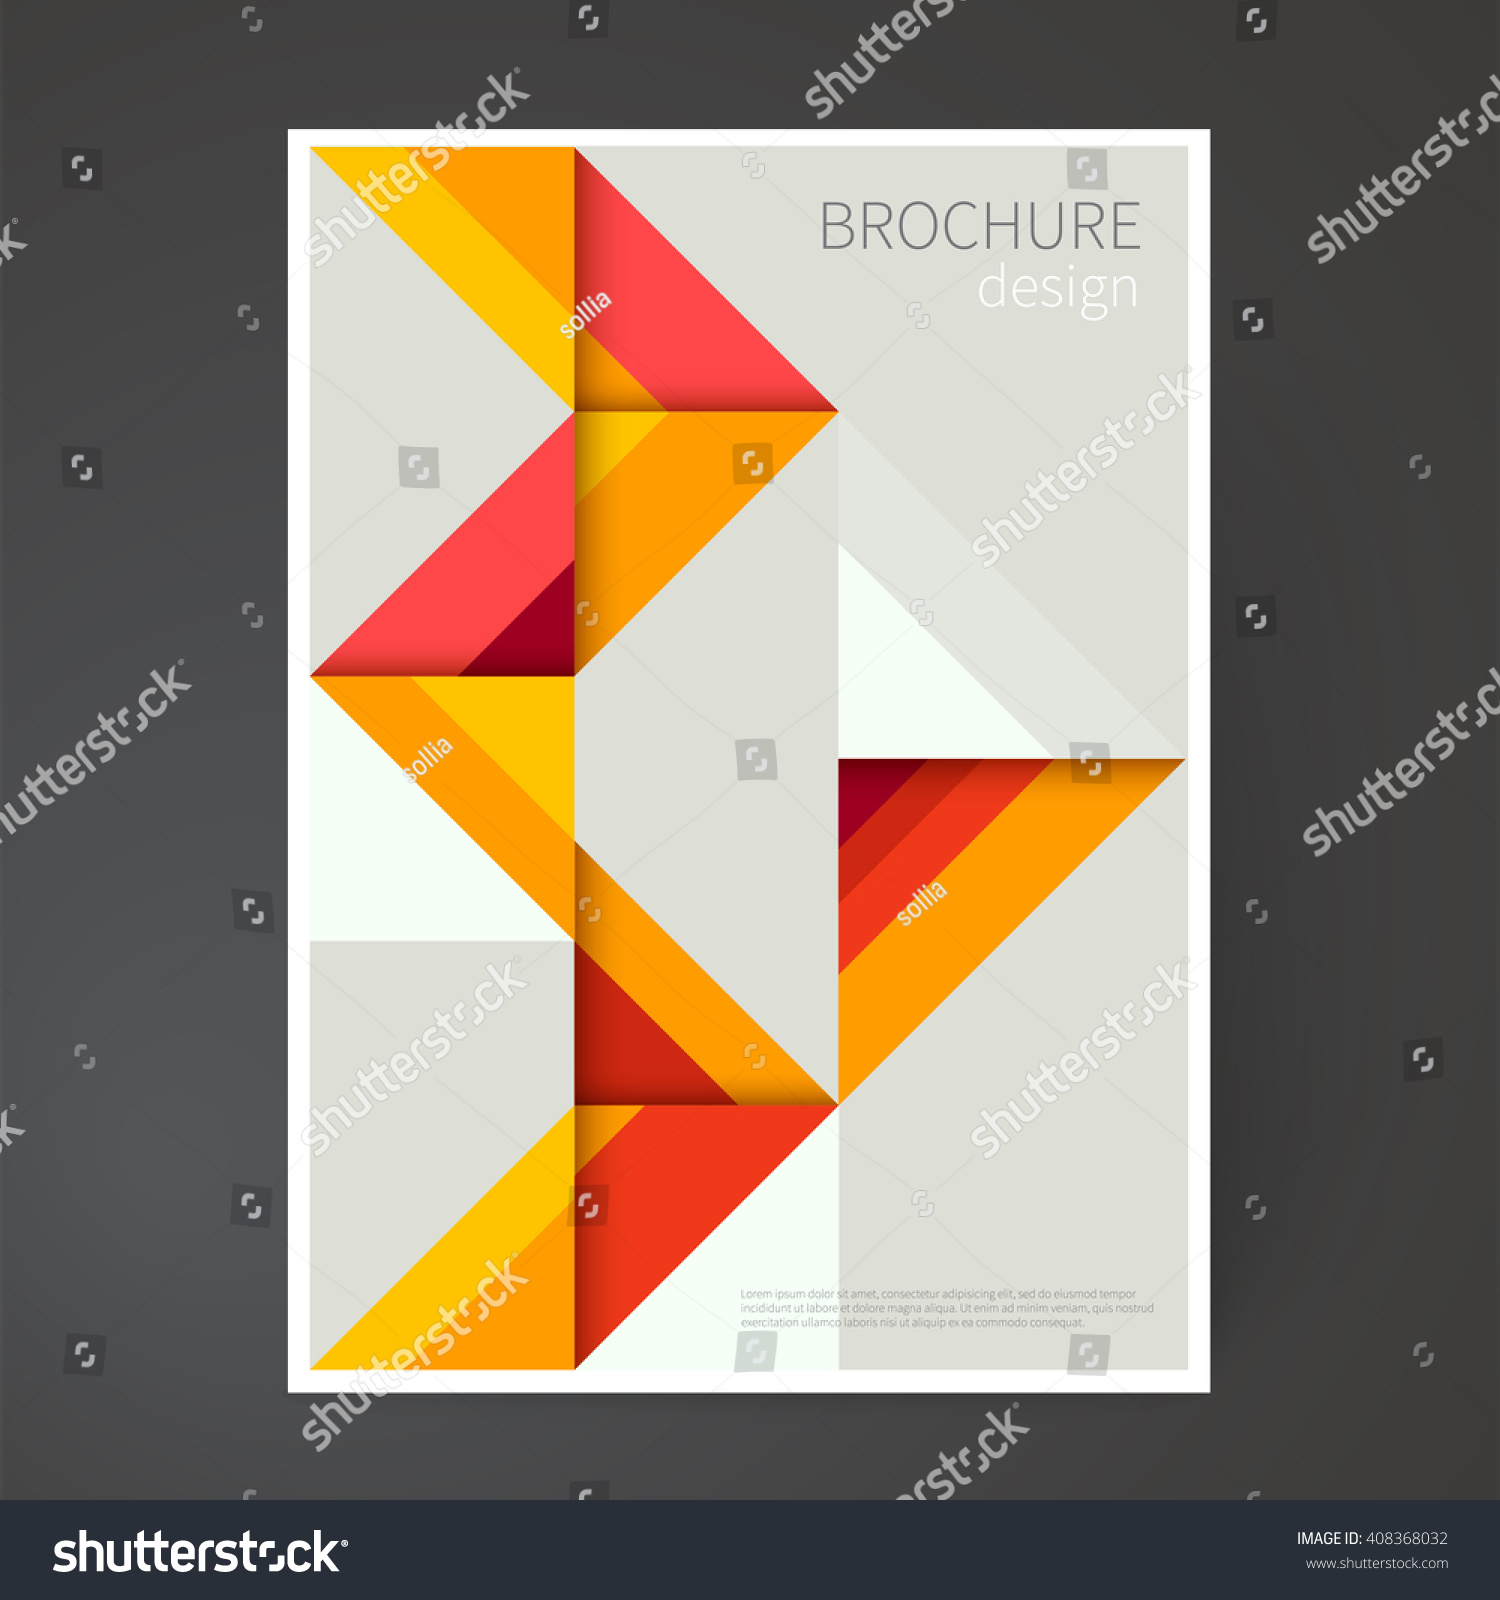 royalty cover design template brochure 408368032 stock cover design template brochure leaflet flyer catalog page poster design origami abstract geometric background mini stic design creative concept